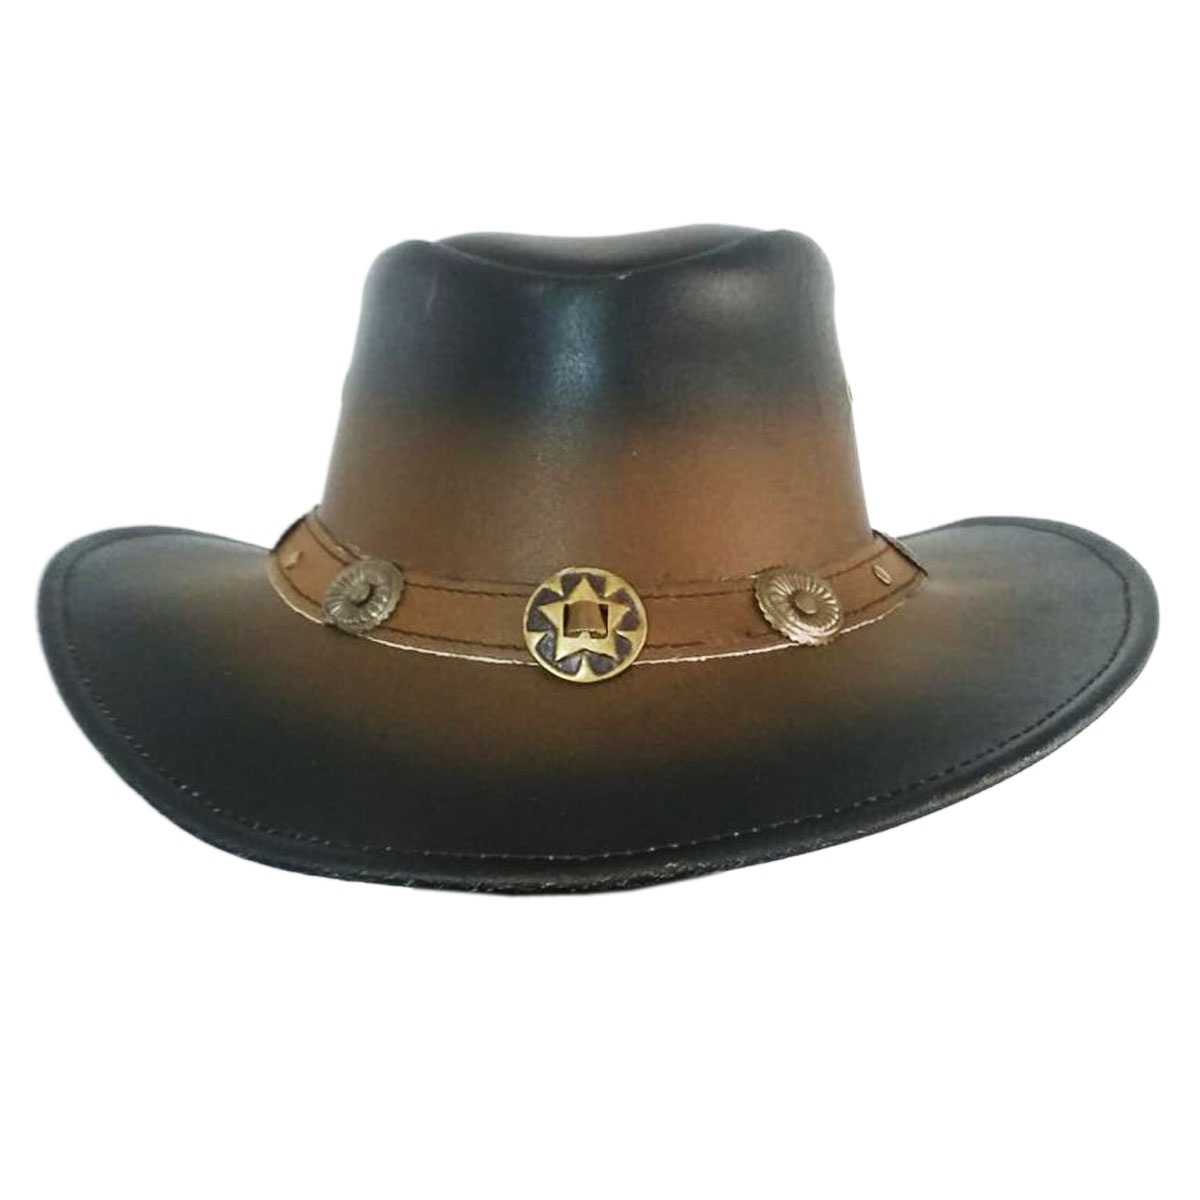 BROWN & BLACK LEATHER HAT